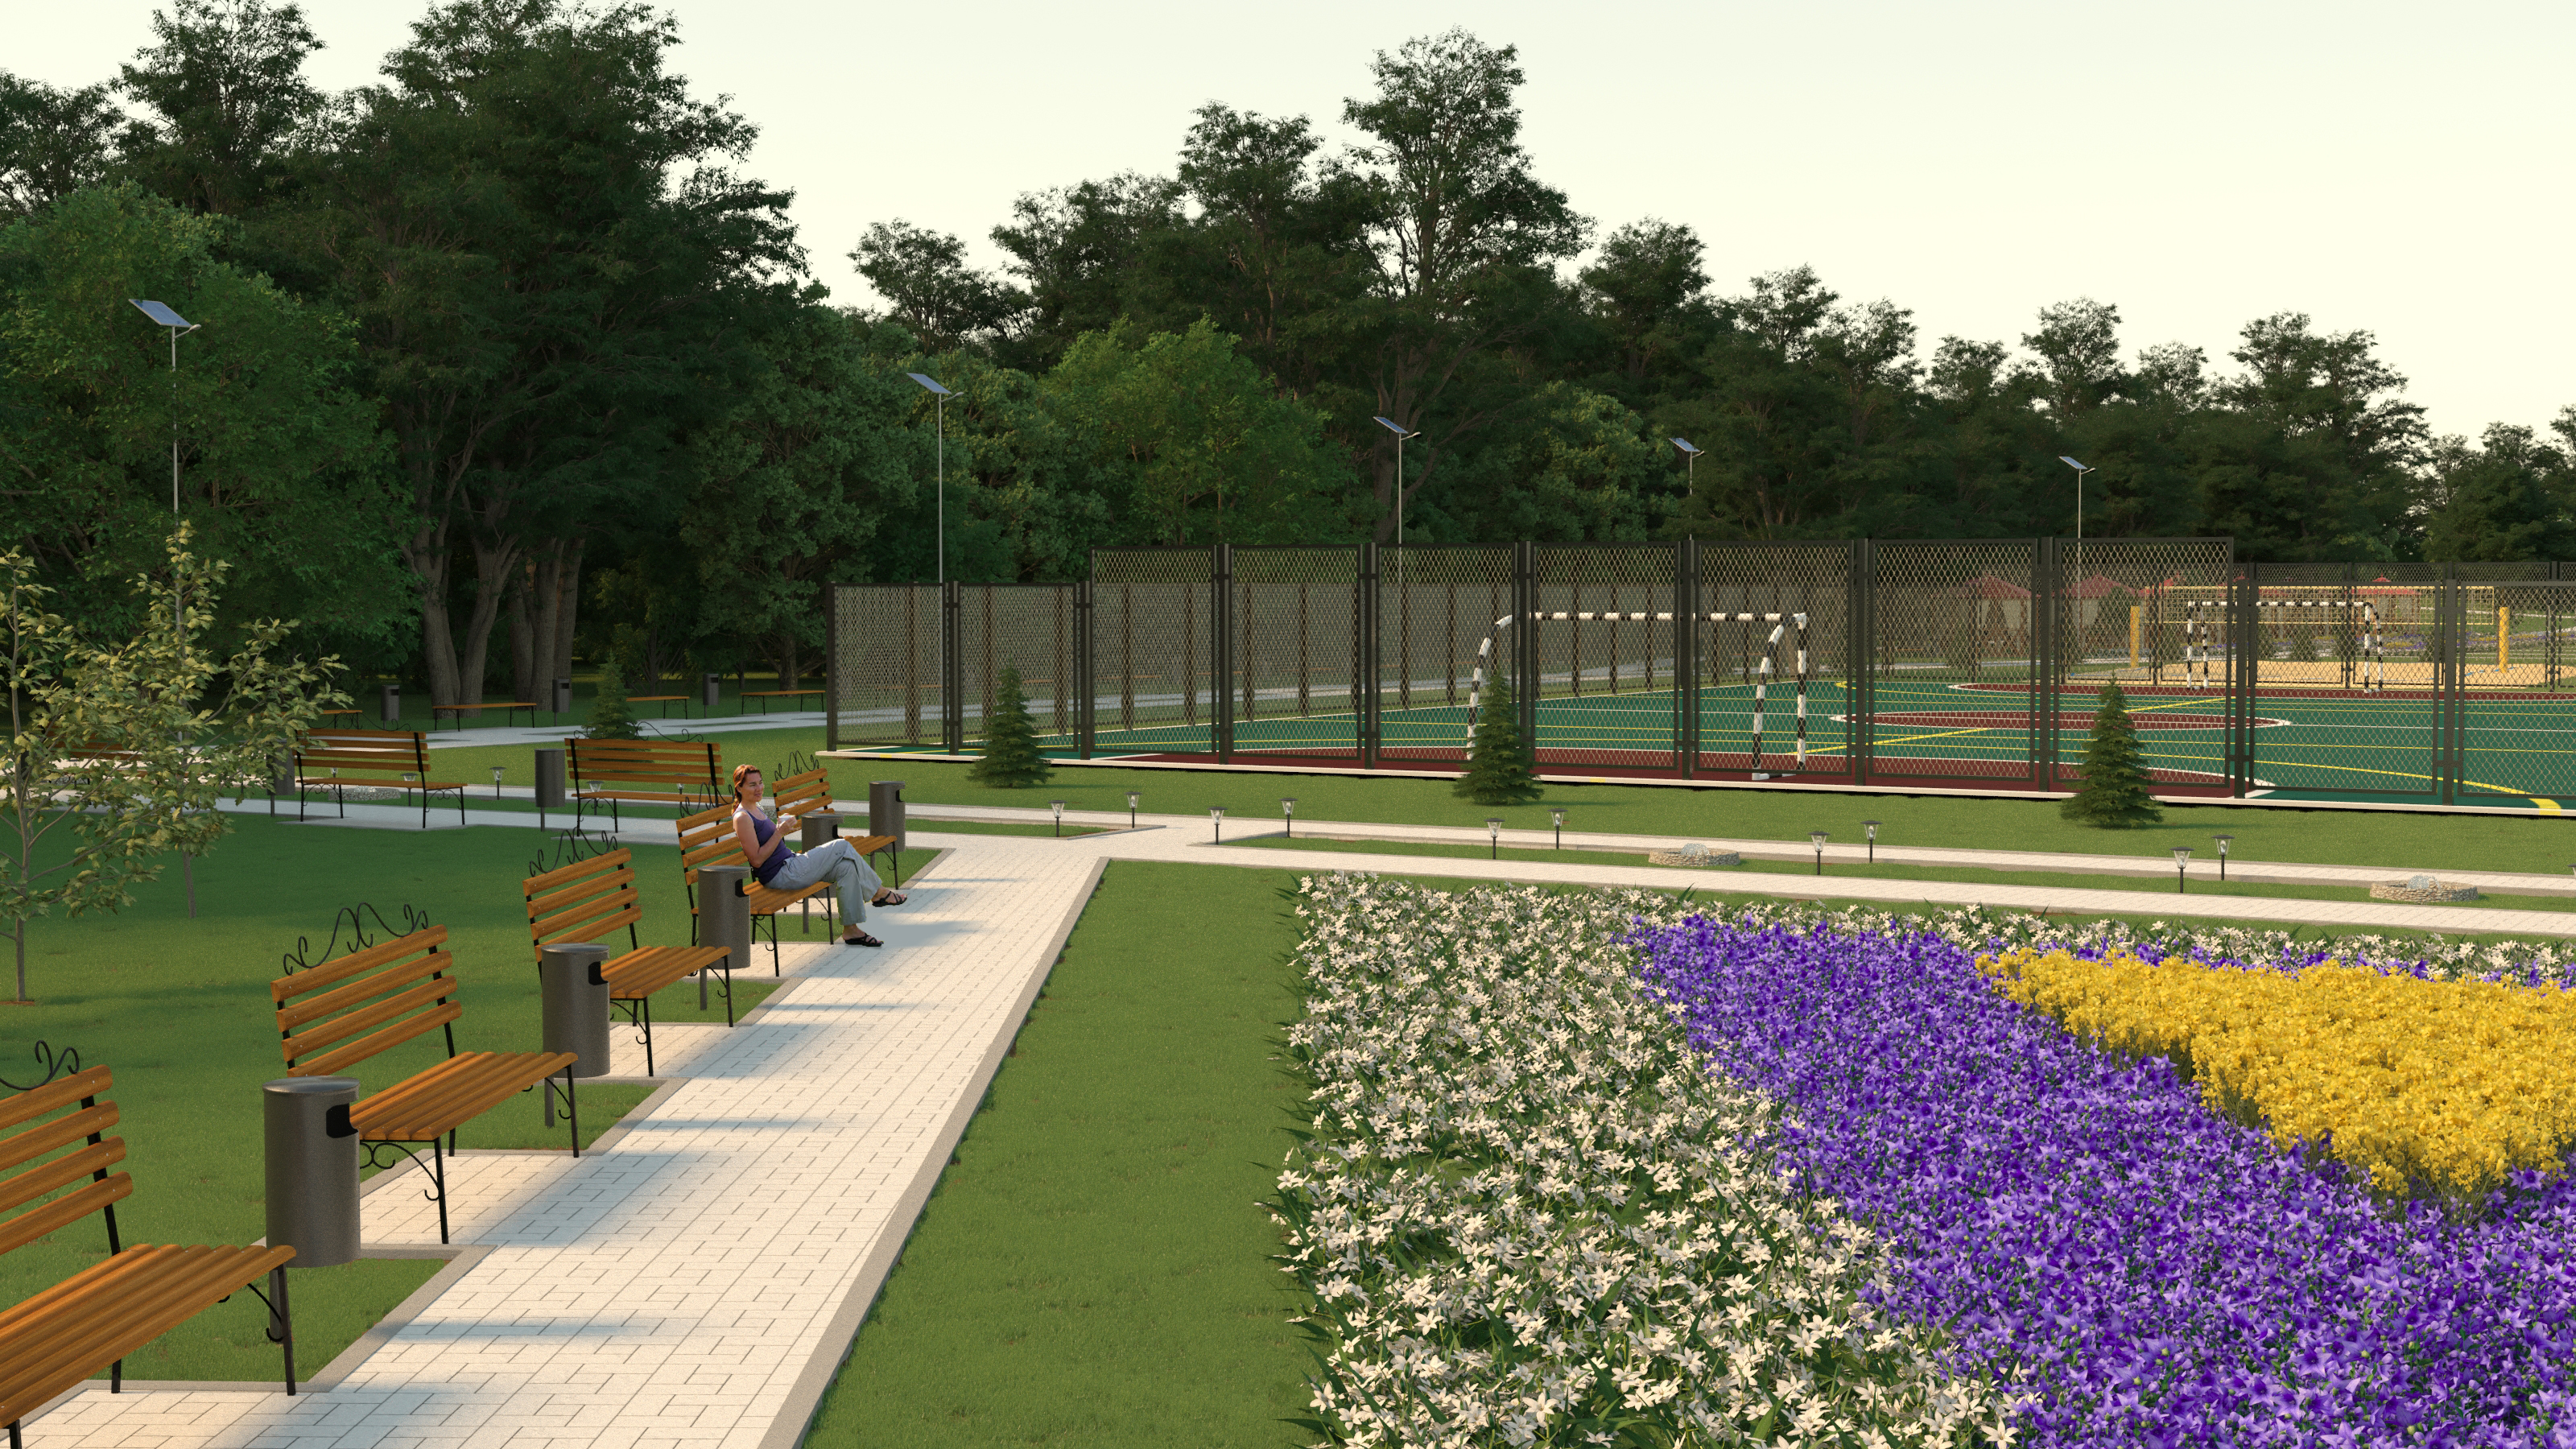 Pavilions in the park in 3d max corona render image